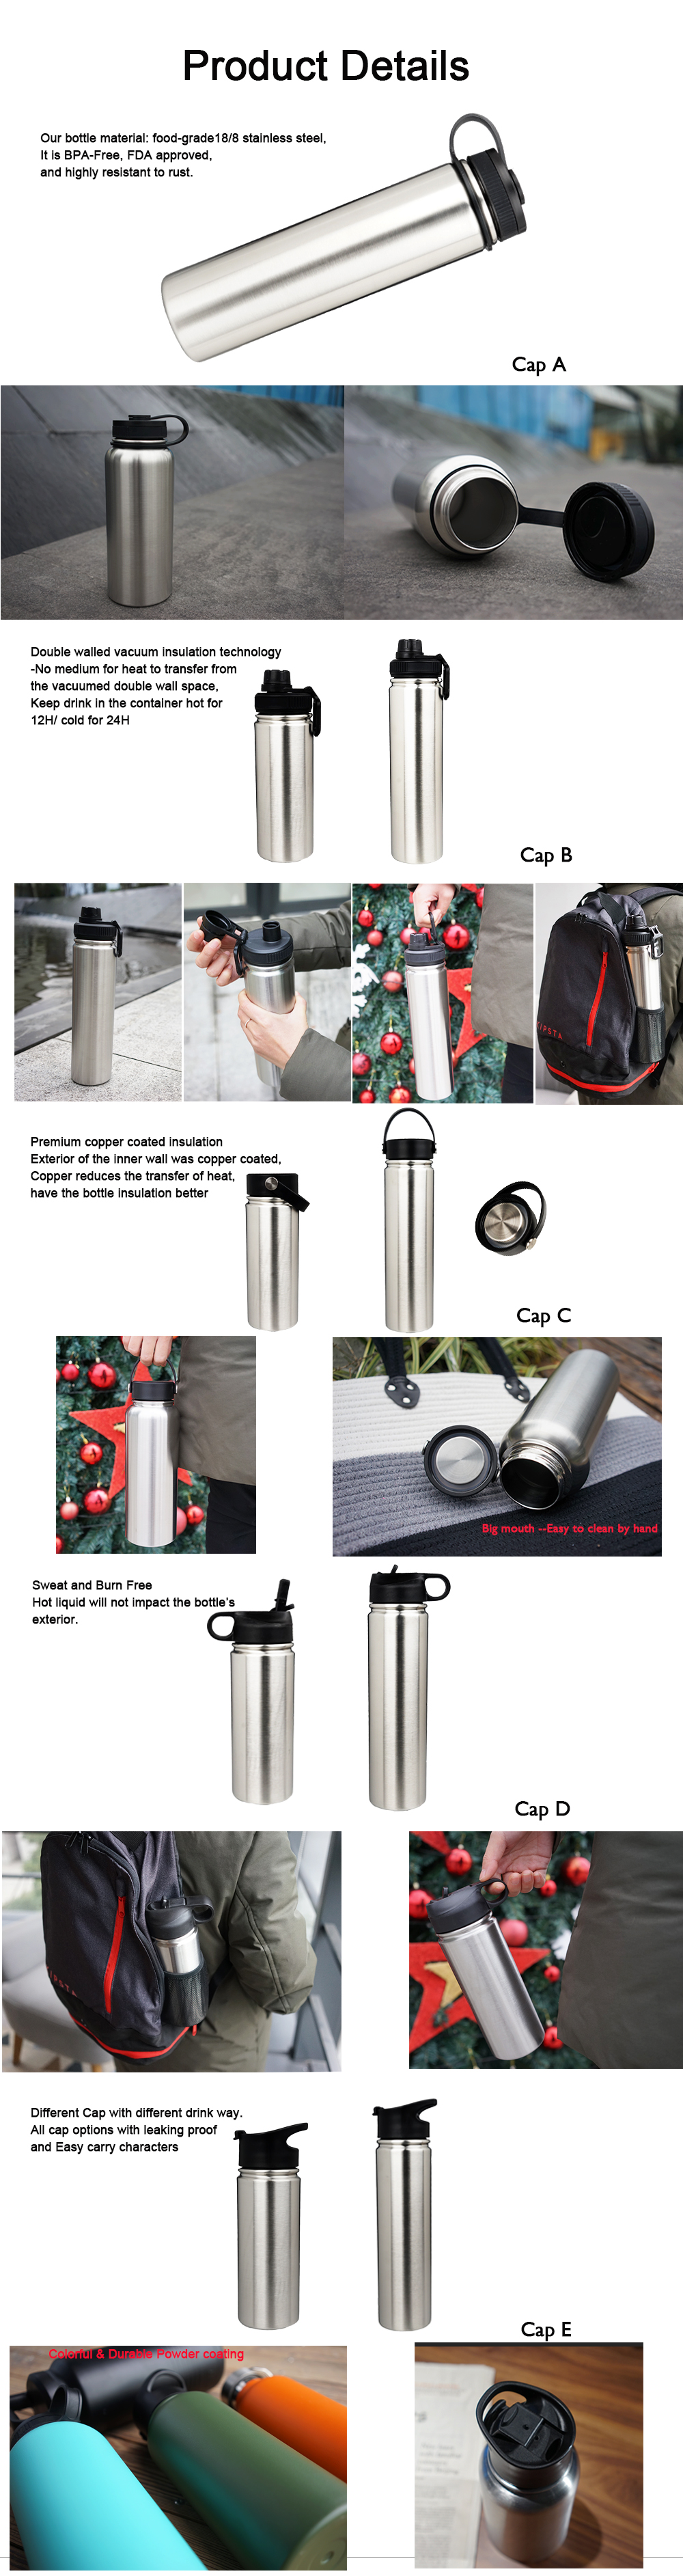 18oz 550ml double wall stainless steel vacuum bottle outer door water bottle can be customized design